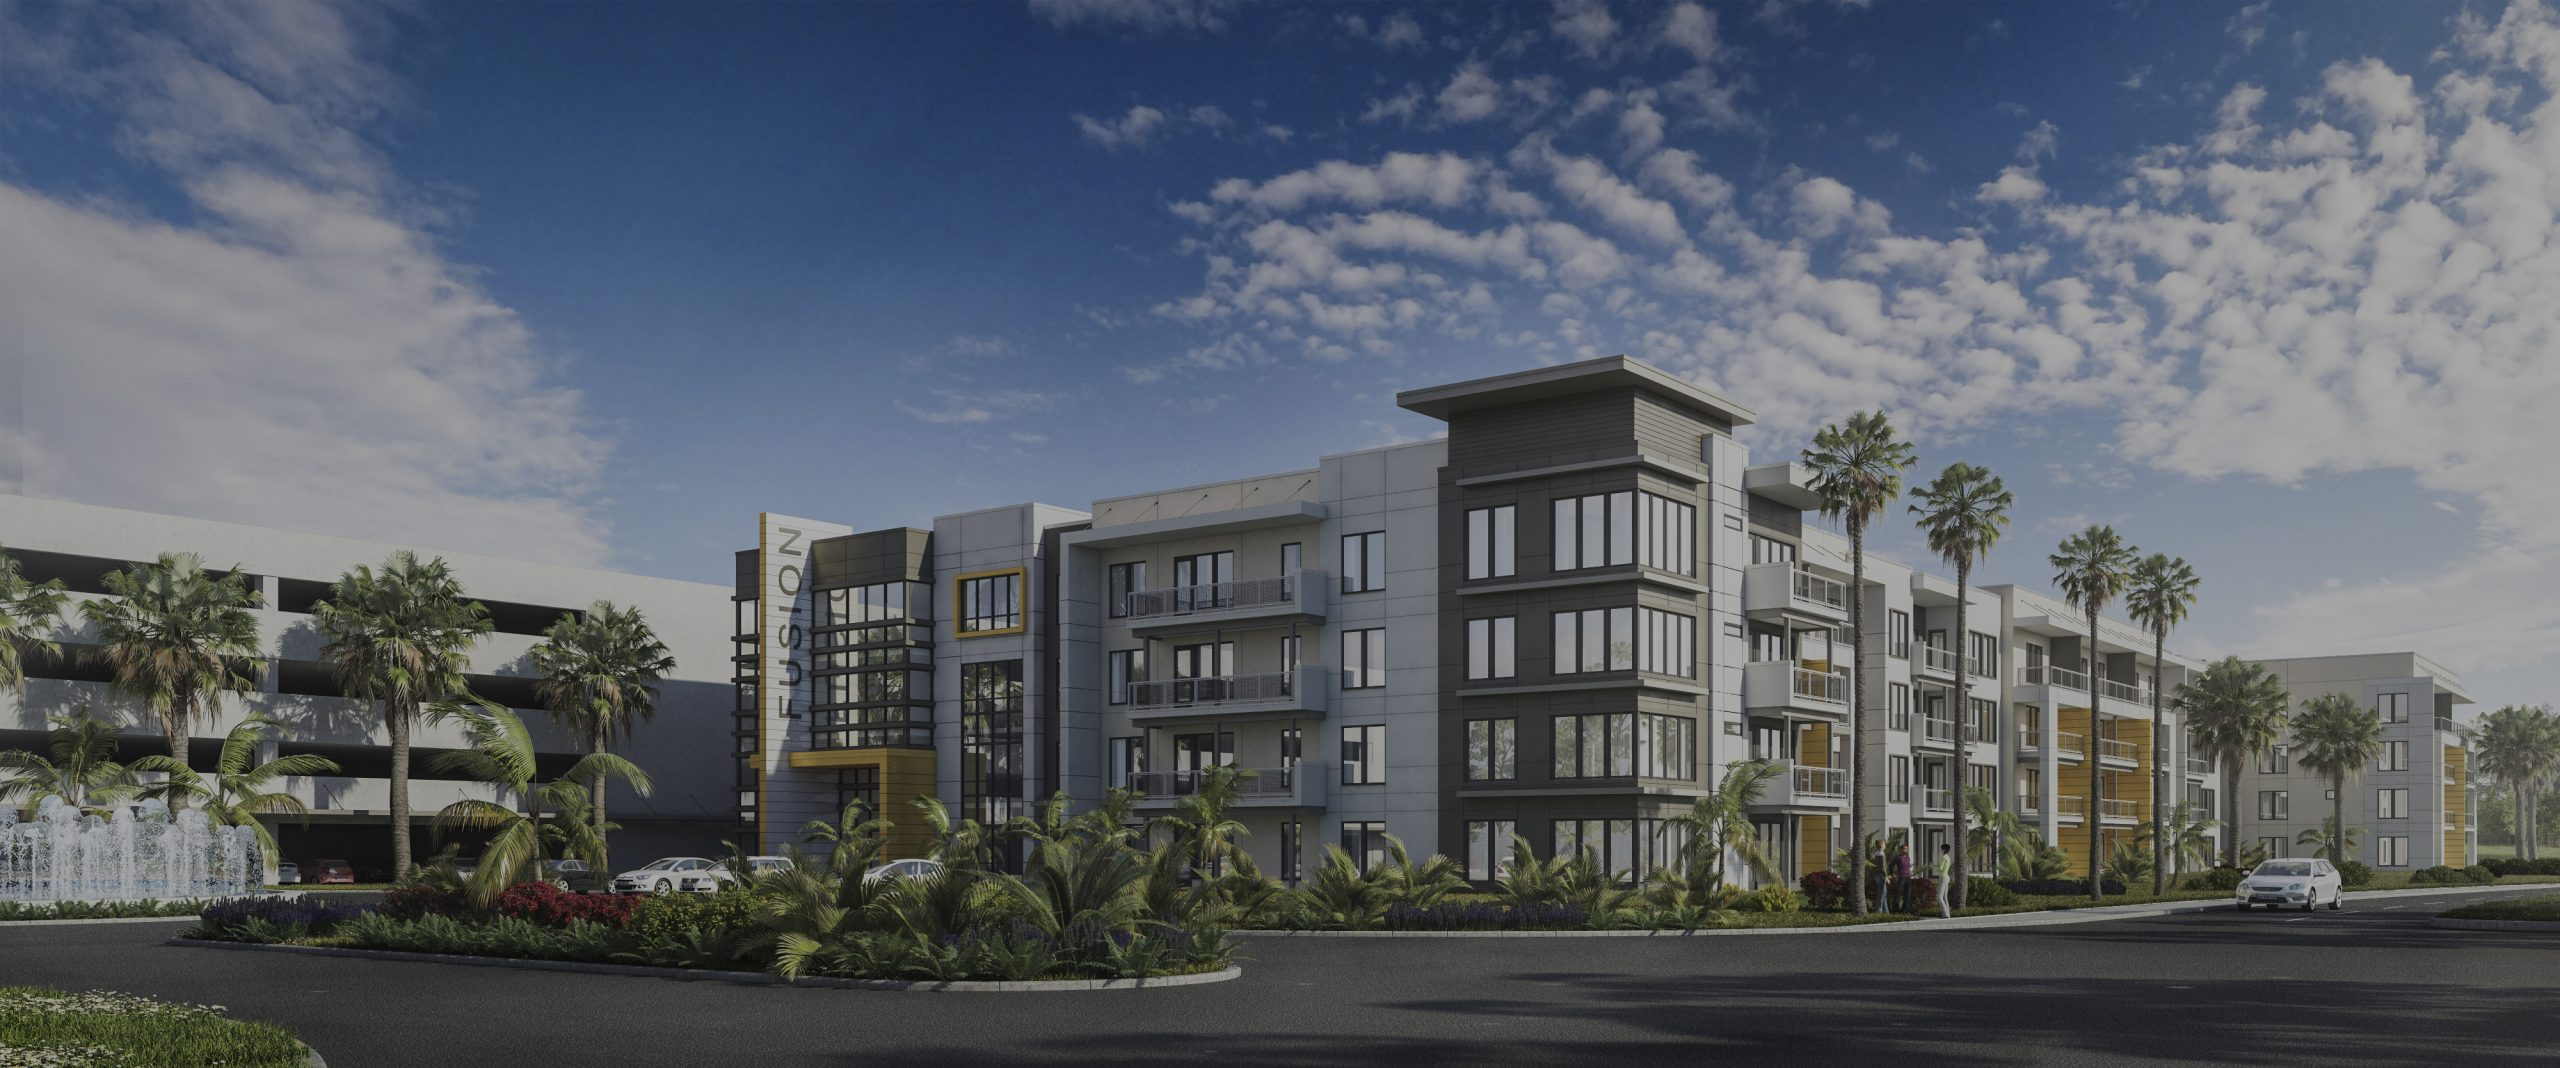 """Rendering of multi level apartment building with """"Fusion"""" sign"""